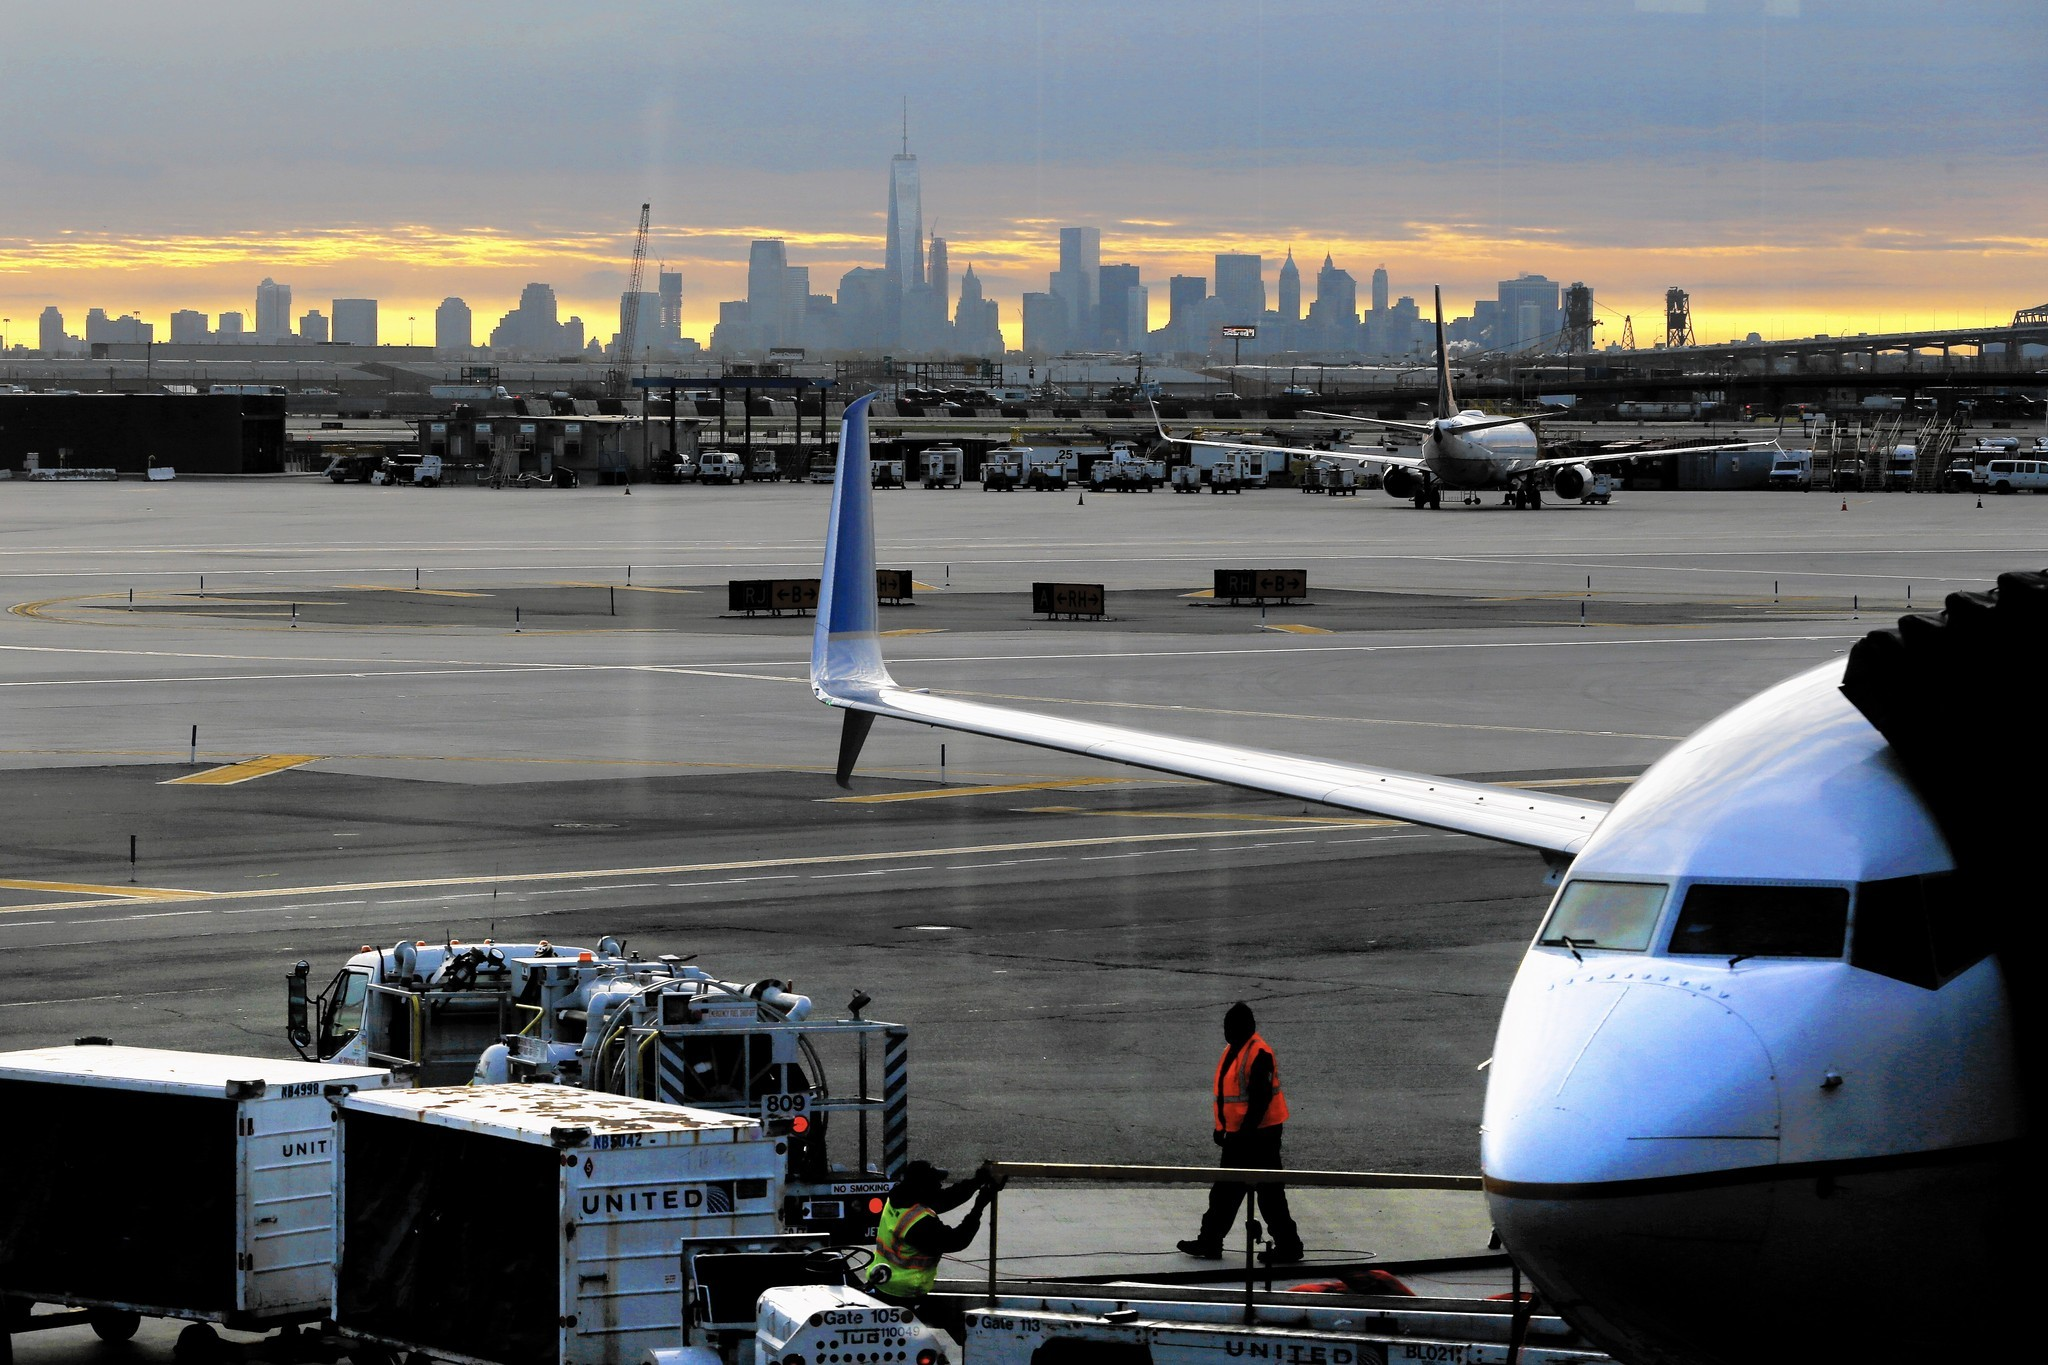 We offer SAFE & SECURE parking options for your travels out of (EWR) Newark Liberty International Airport. Reserve at any one of our off airport parking facilities and save big with rates starting at $ per day. Compare that to $ per day for Newark Airport economy long term parking lots.